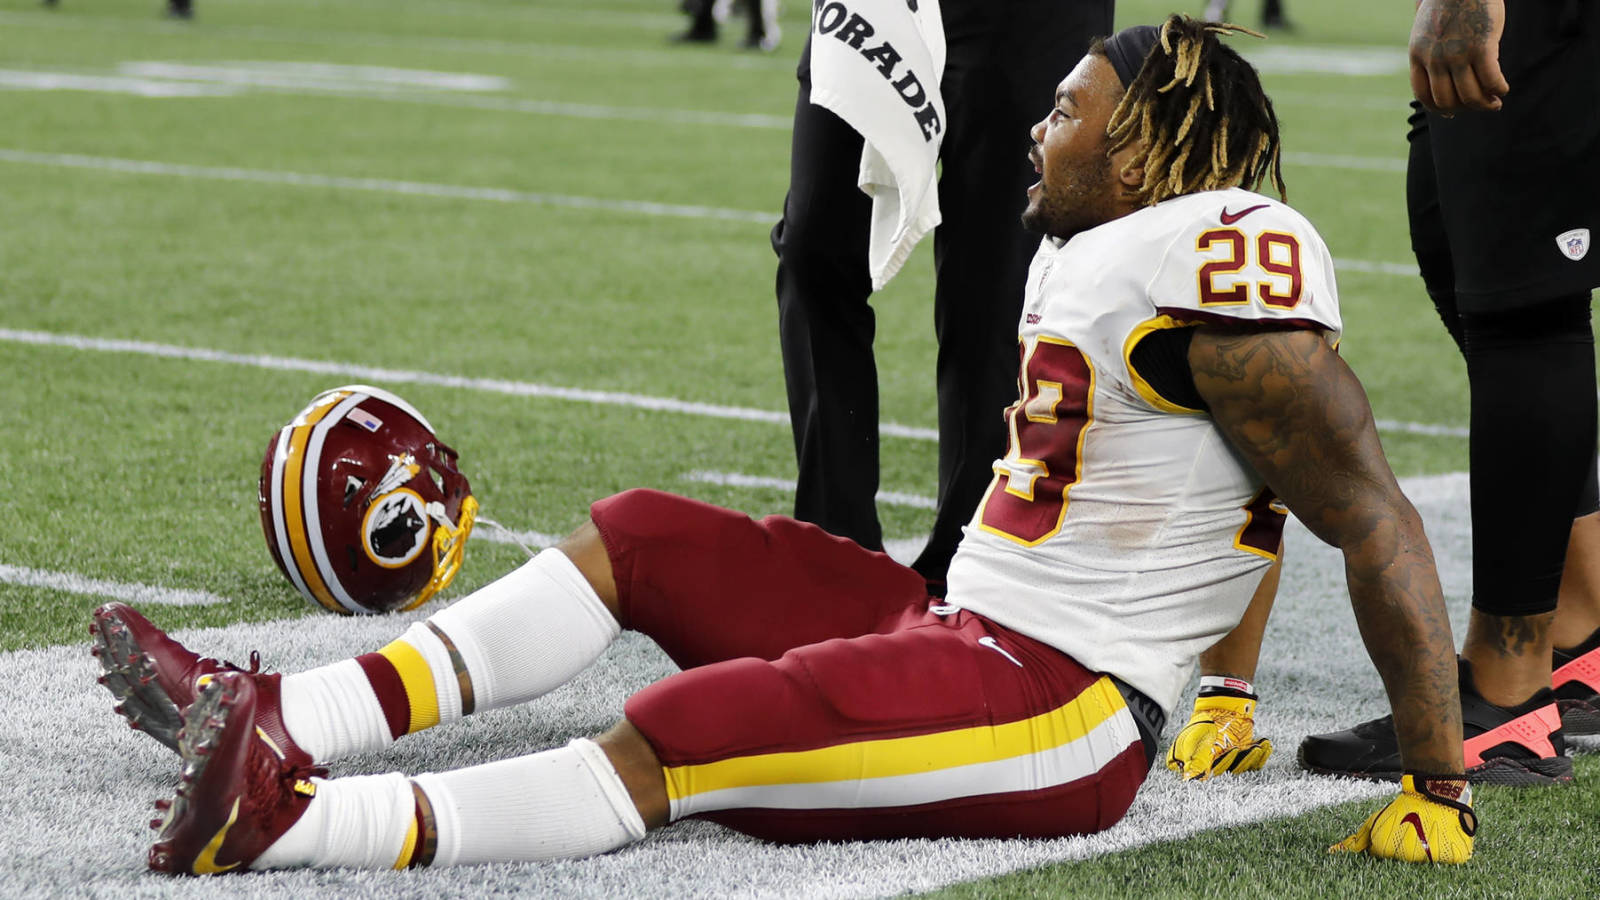 Washington continues to be down on its injury luck after Derrius Guice hype derailed